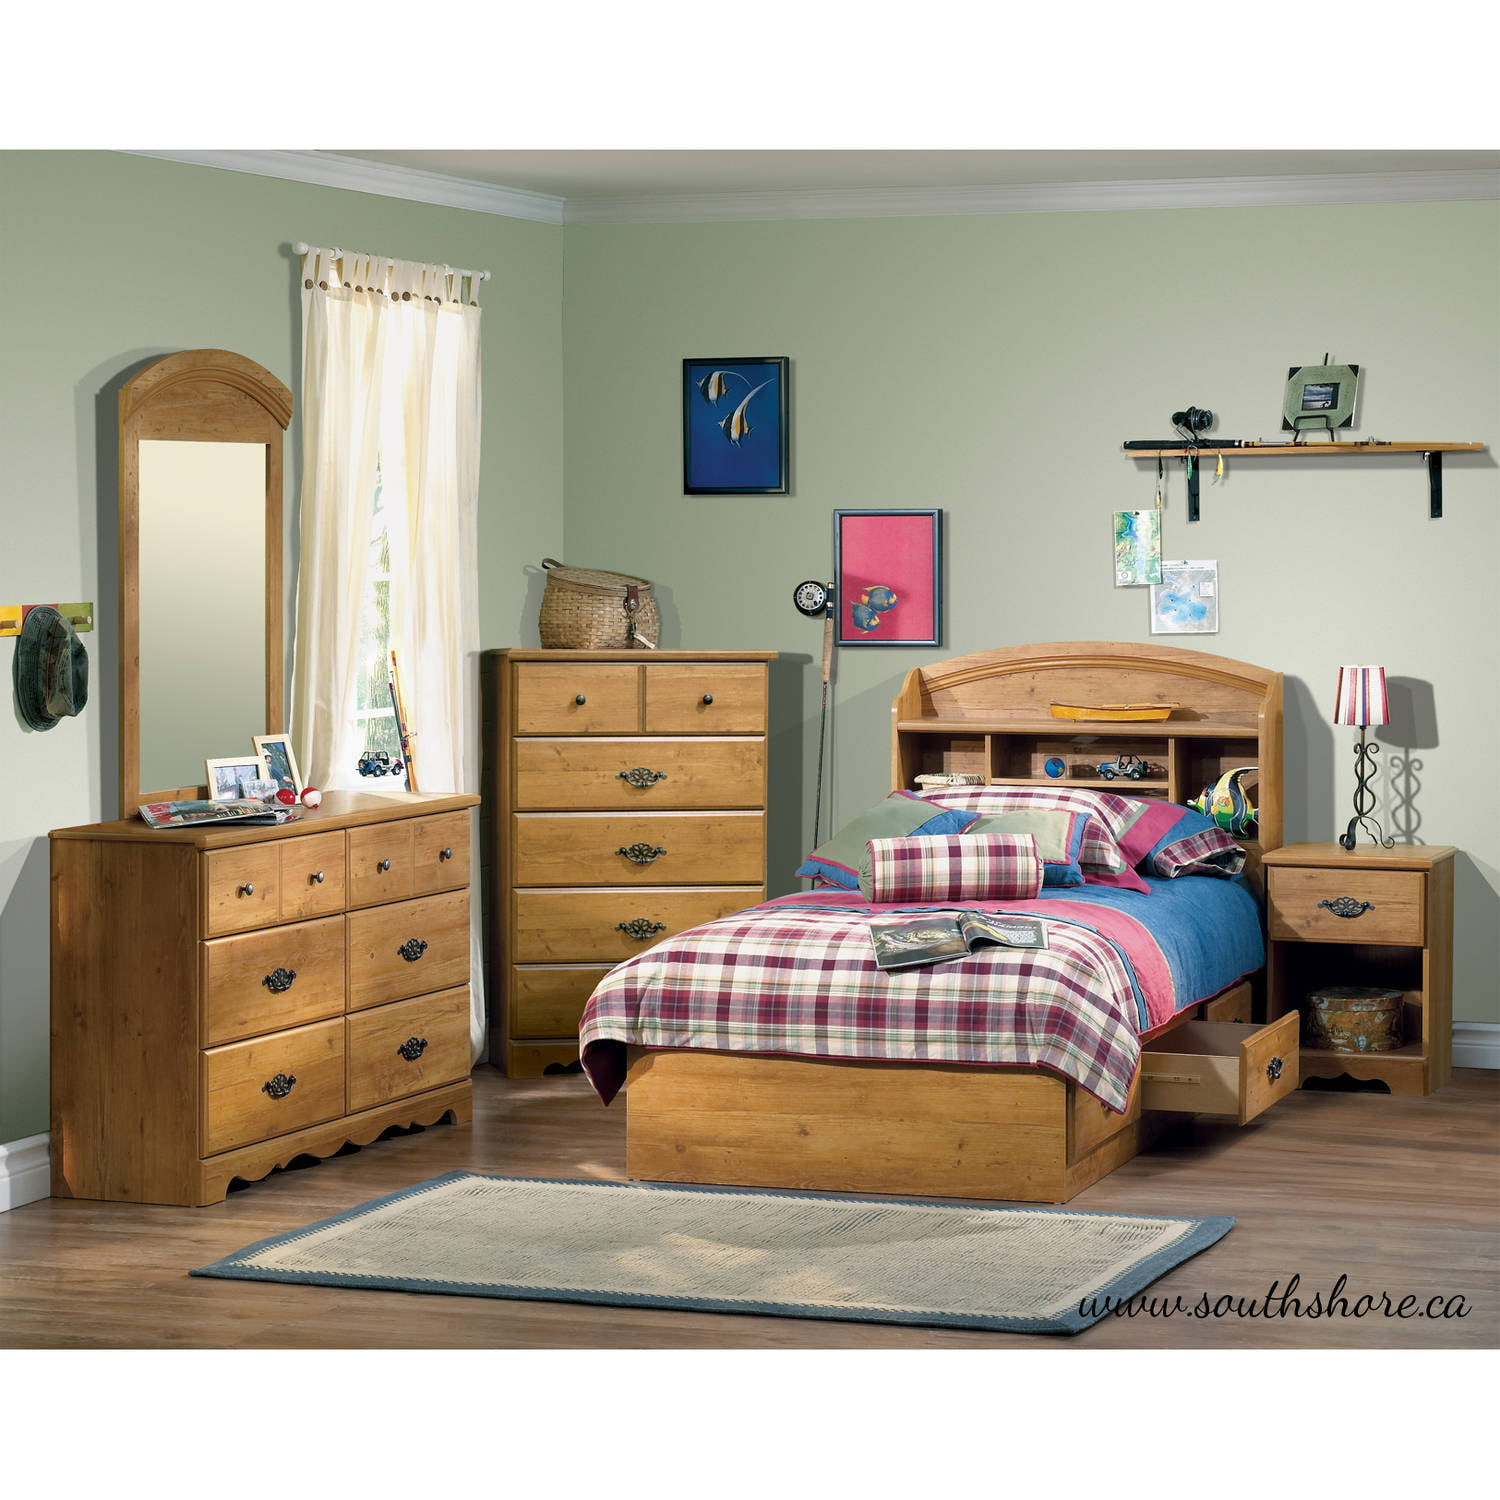 Teenage boys bedroom furniture - Bedroom Furniture For Boy Bedroom Furniture For Boy I